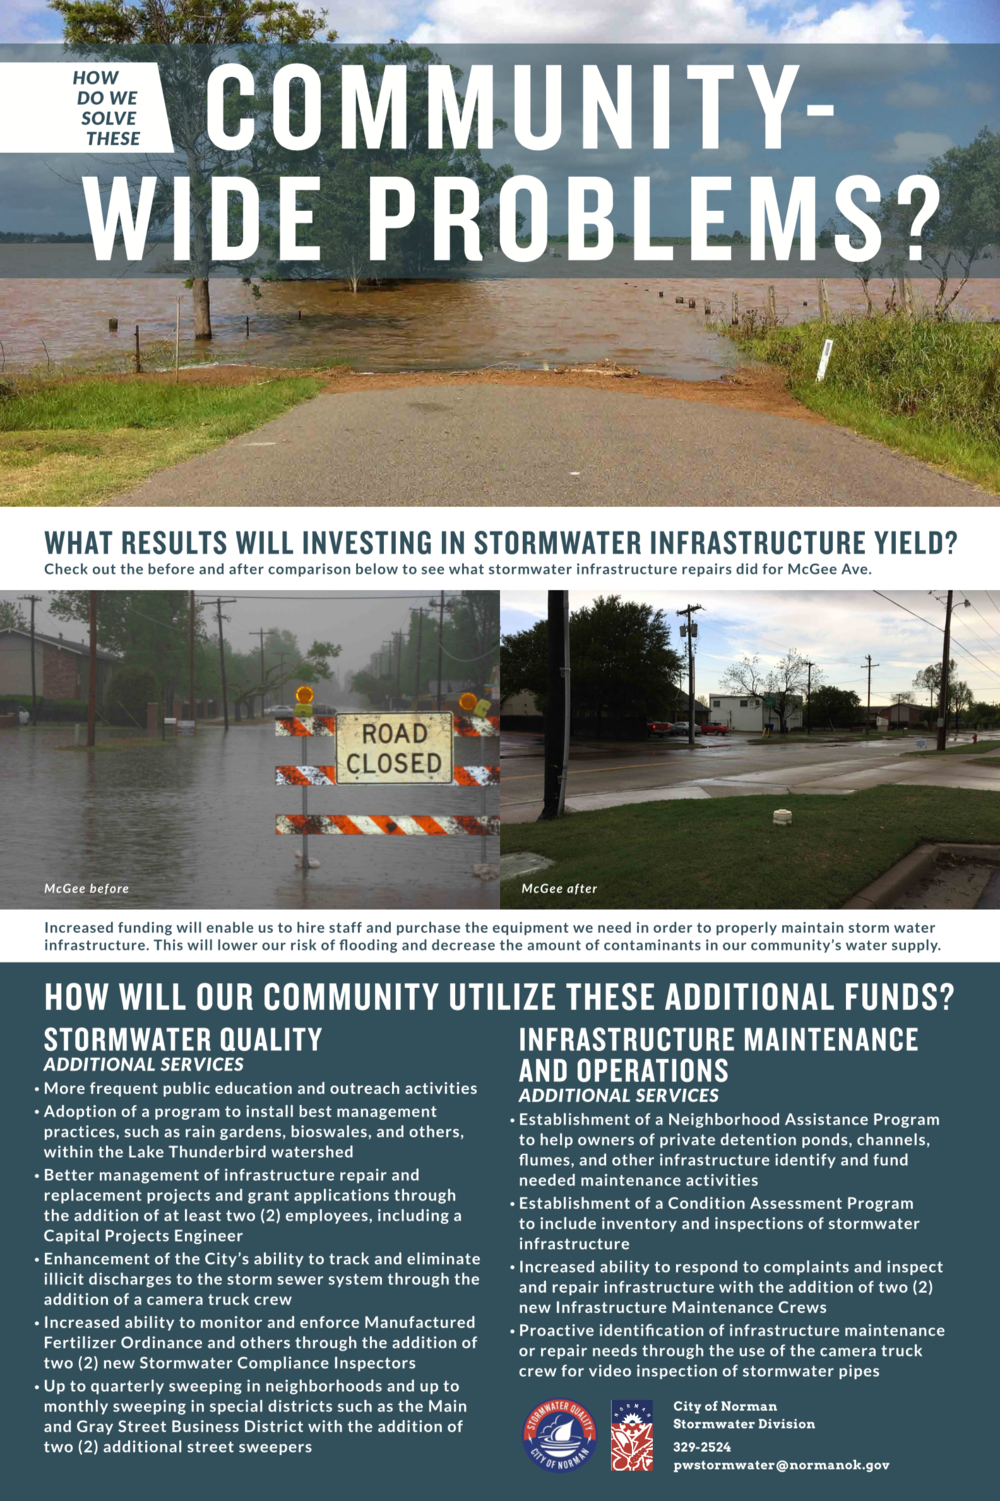 Community Wide Problems? - Stormwater Infrastructure Investment